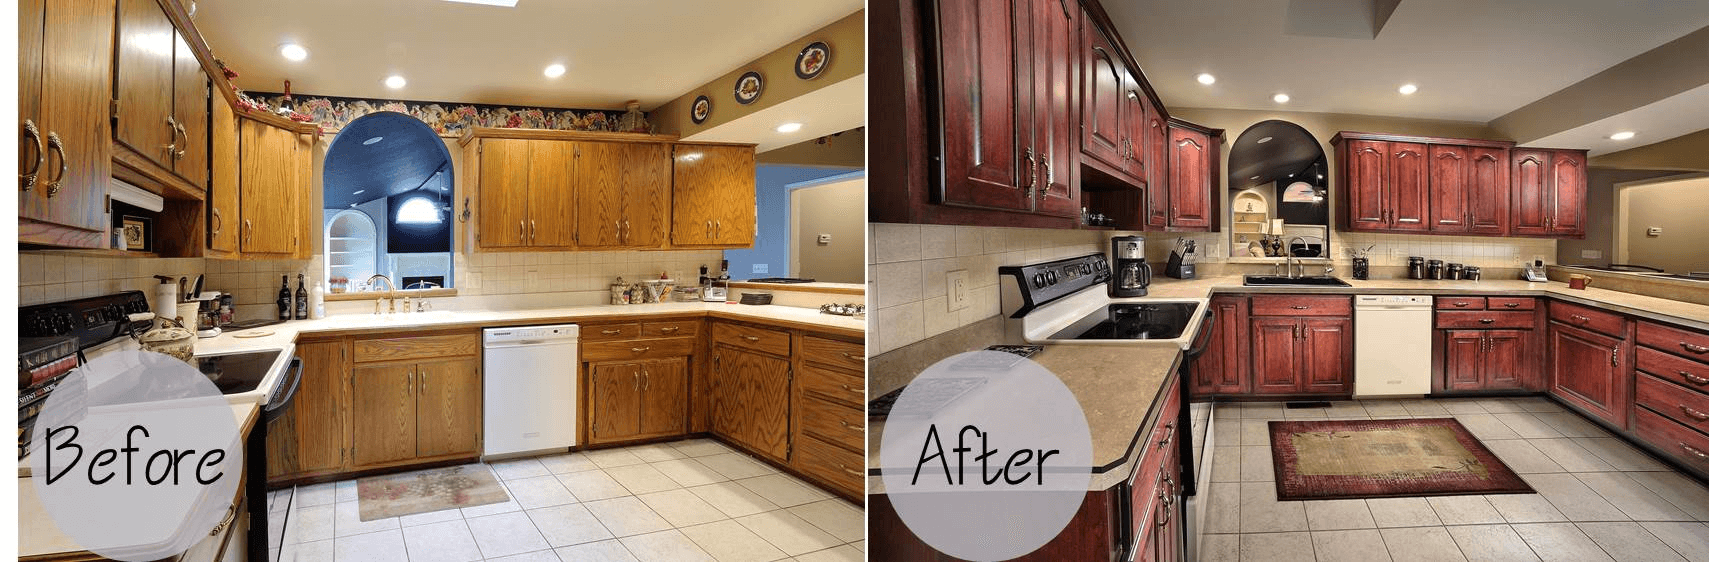 nj and our team home refacing remodel kitchen improvements by s ios madison cabinet project revamped this monk